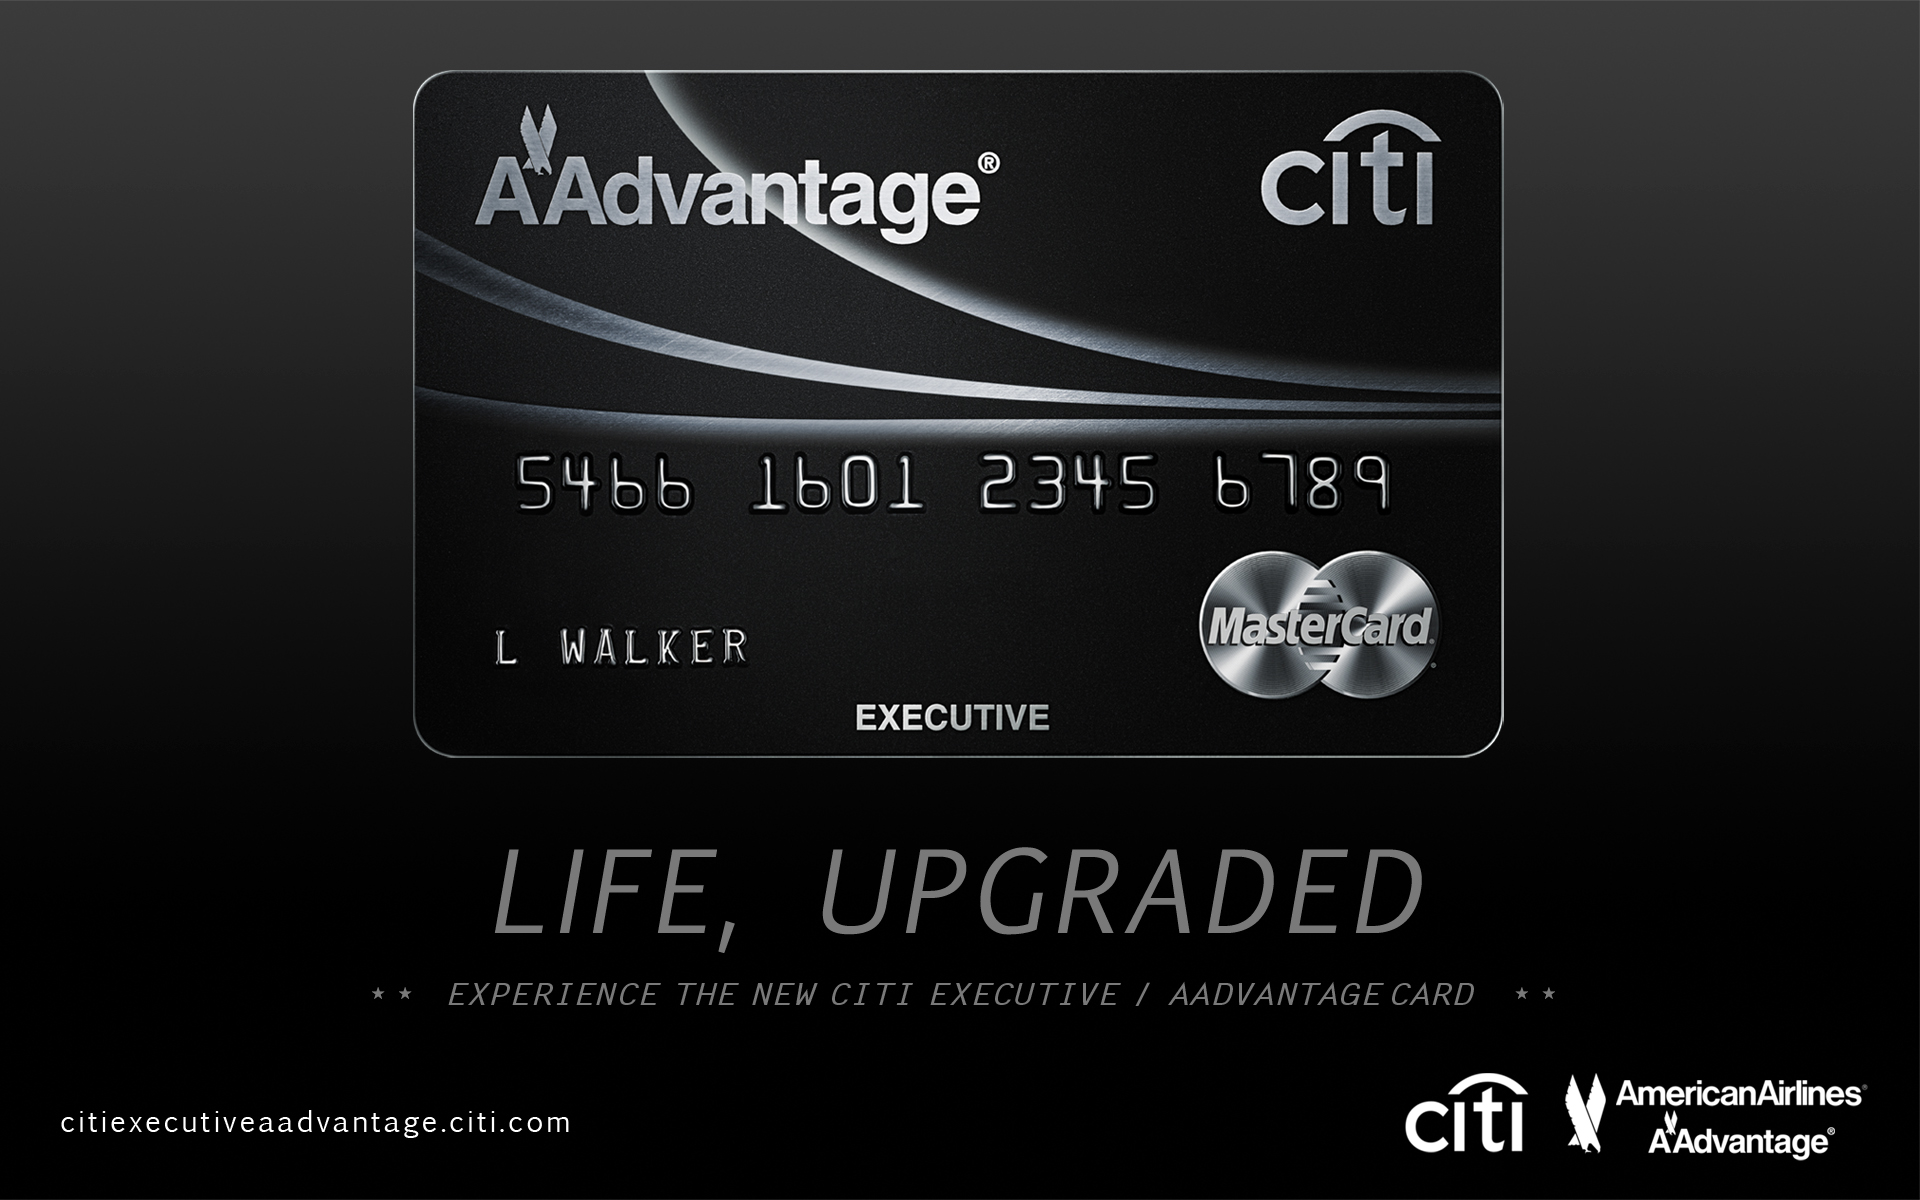 CITIAA_card_0906.jpg